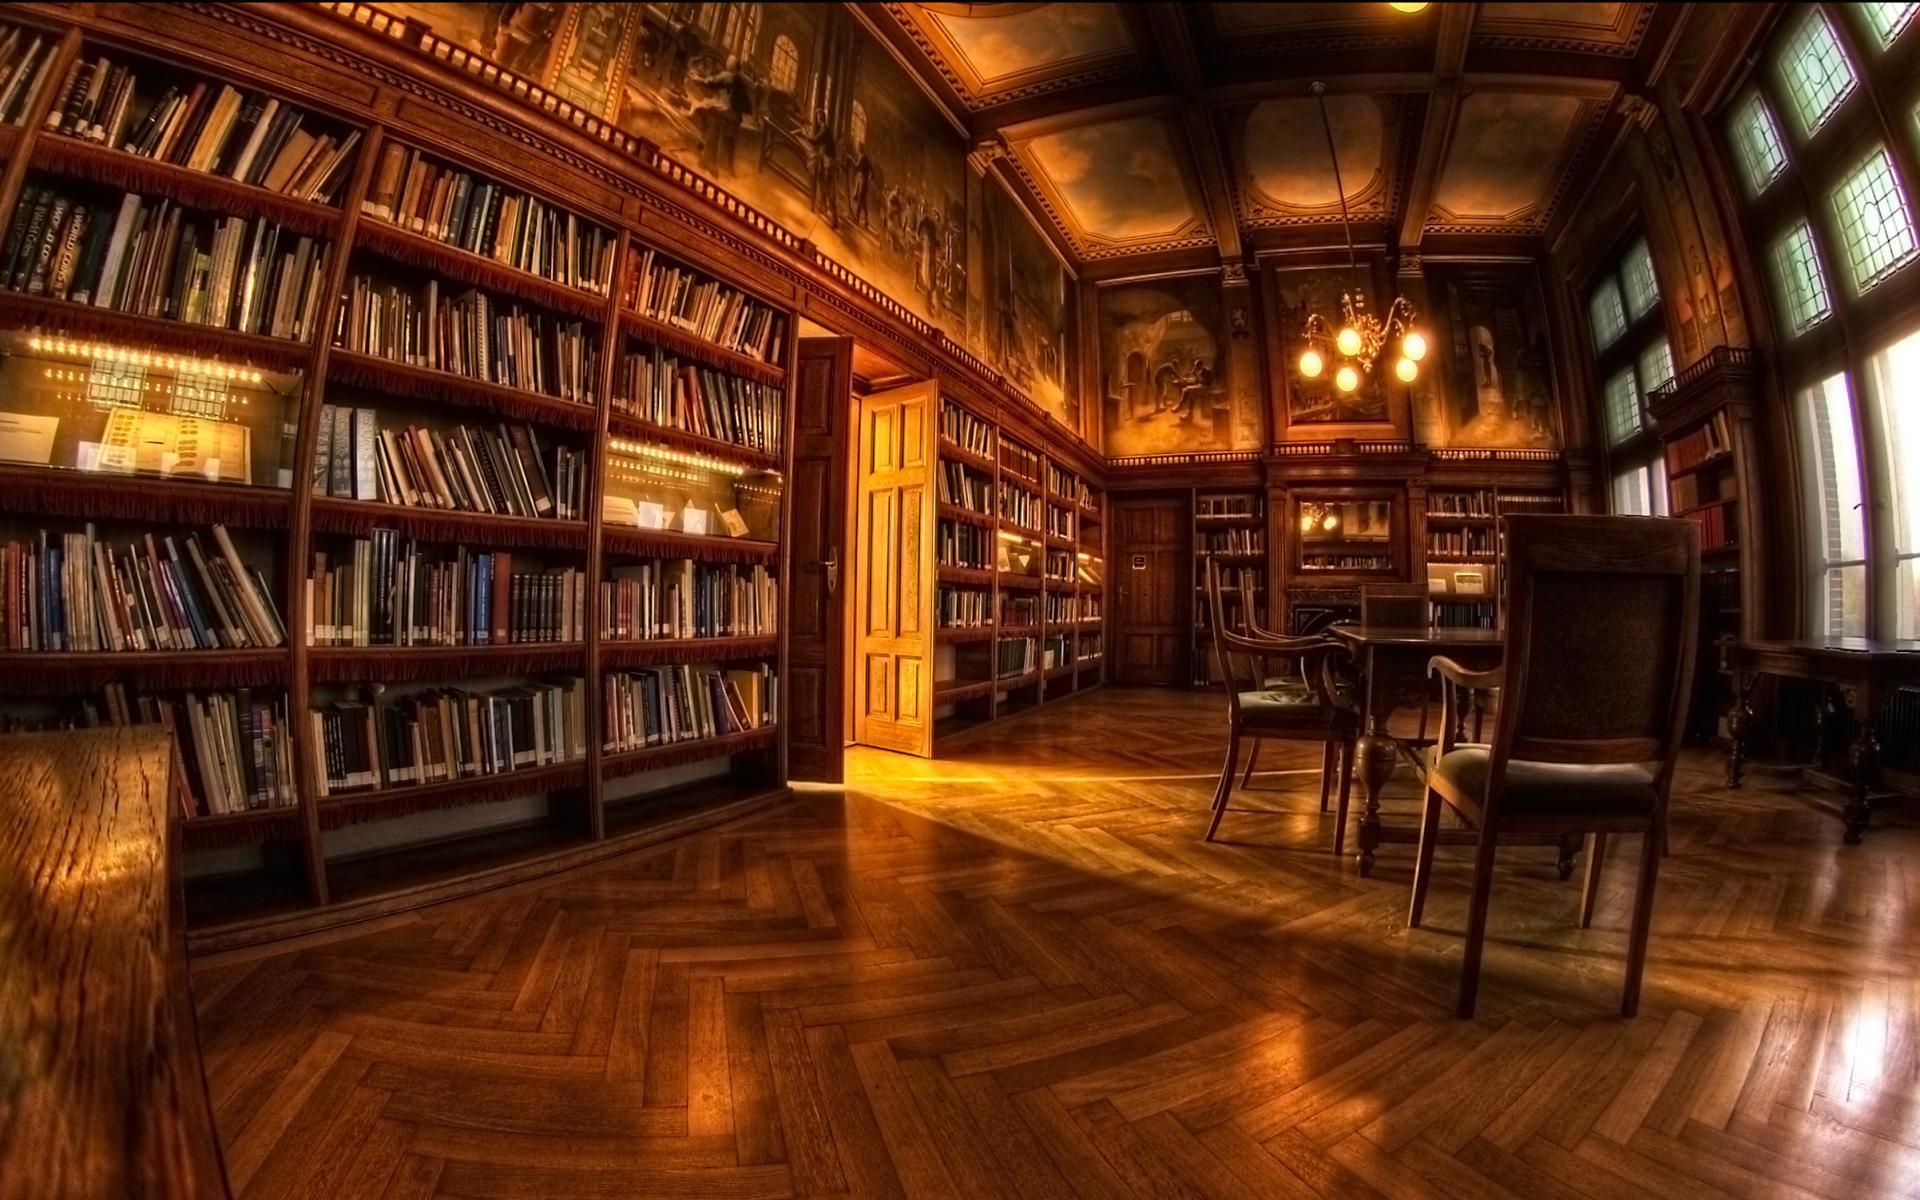 Library Wallpapers 6   HD Wallpapers   Pinterest